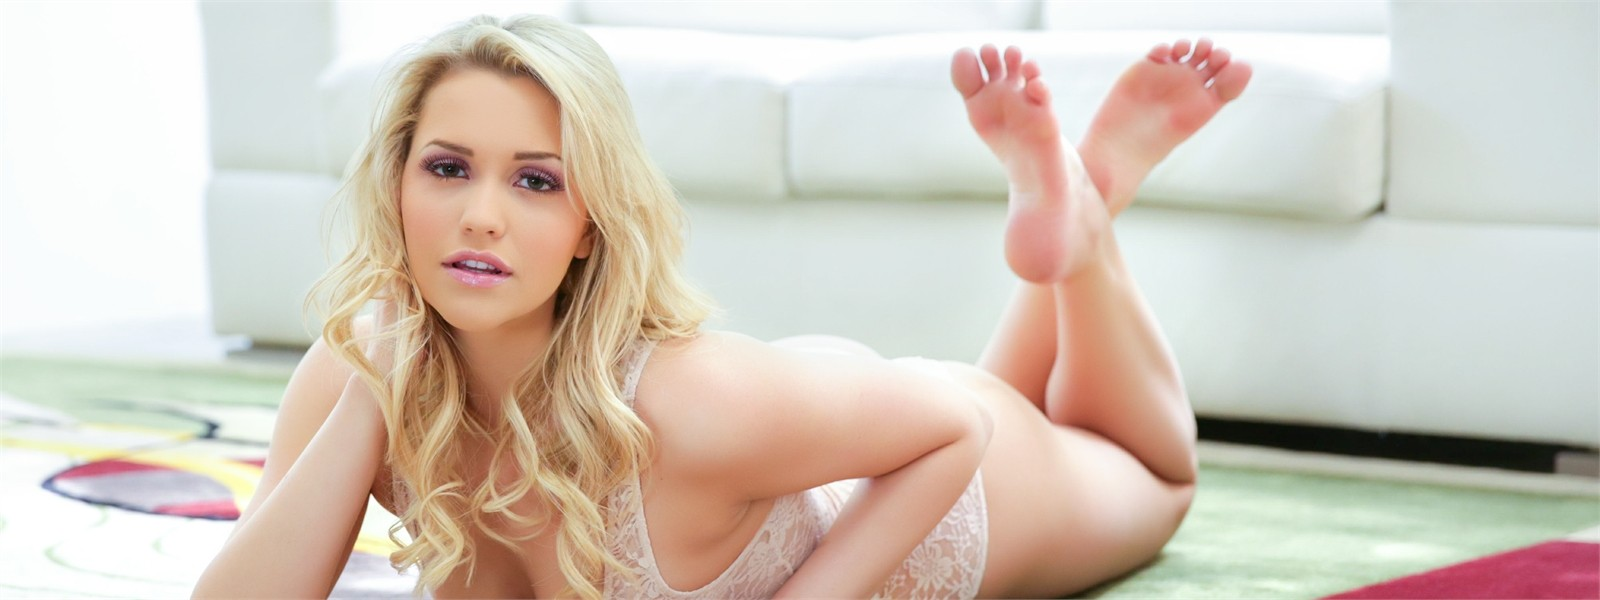 Watch porn scenes from Mia Malkova.